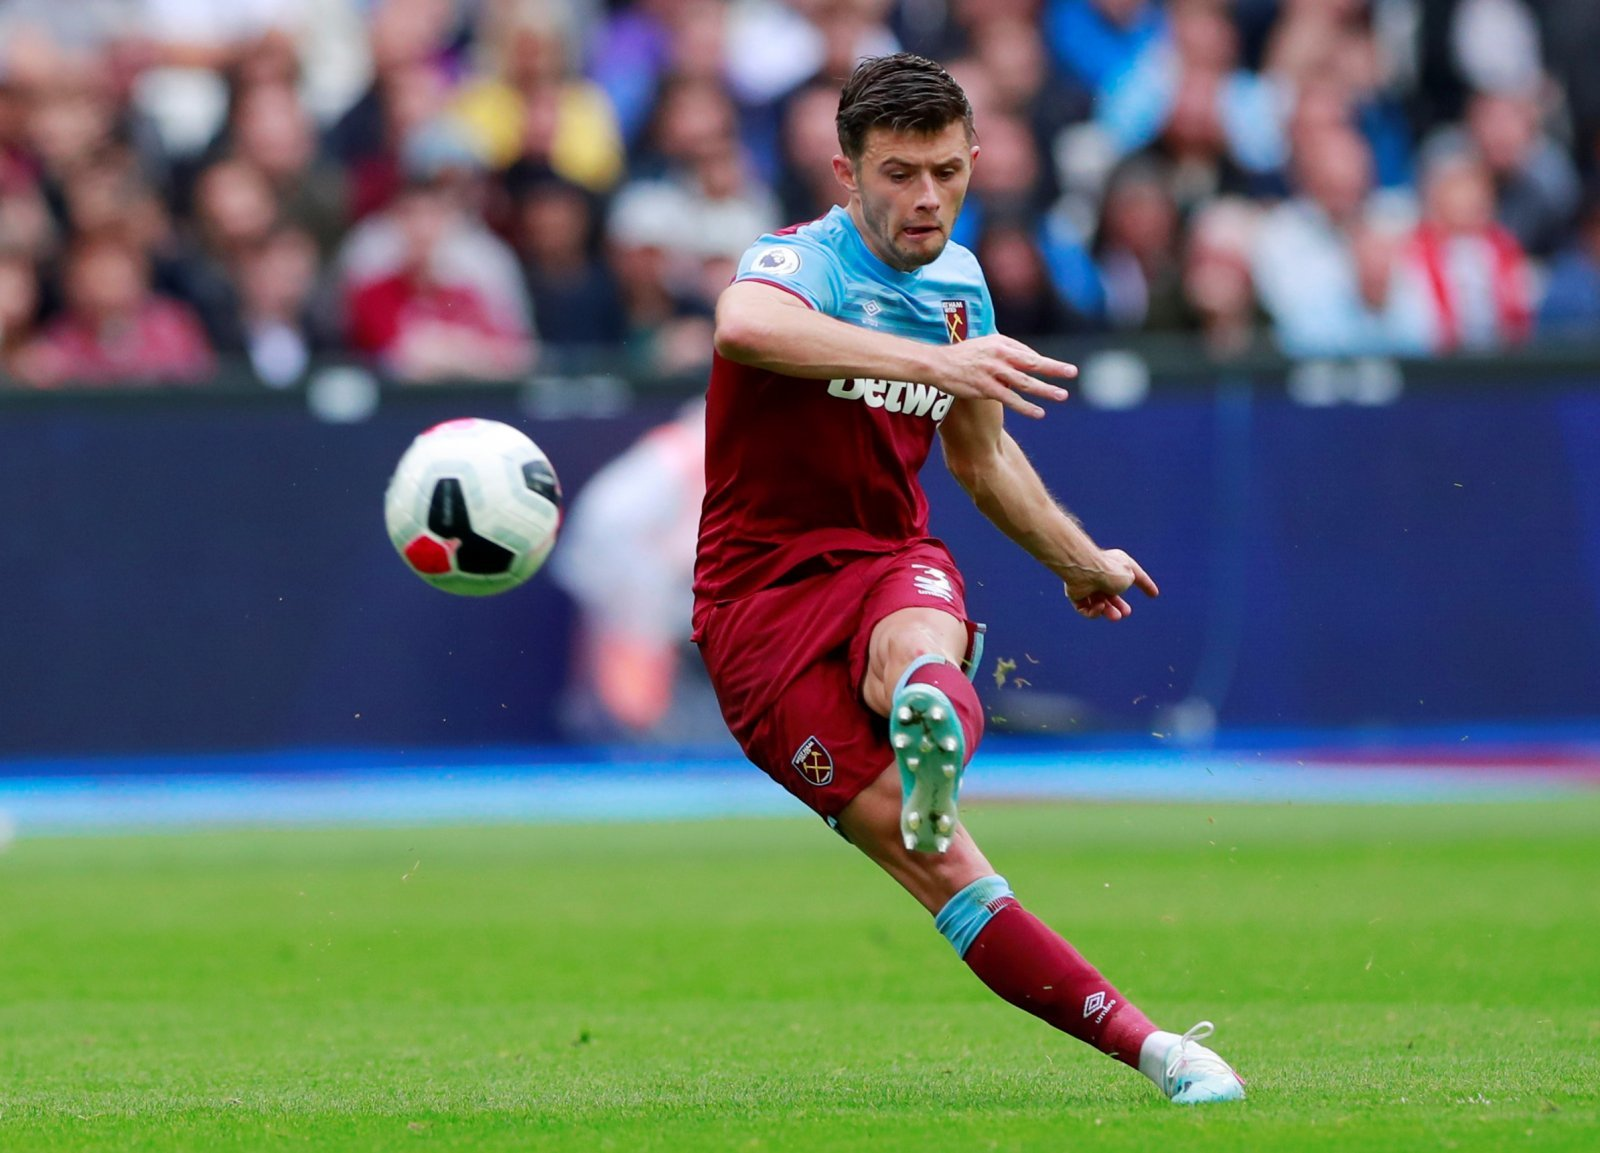 West Ham United: Aaron Cresswell set to be available against Sheffield United